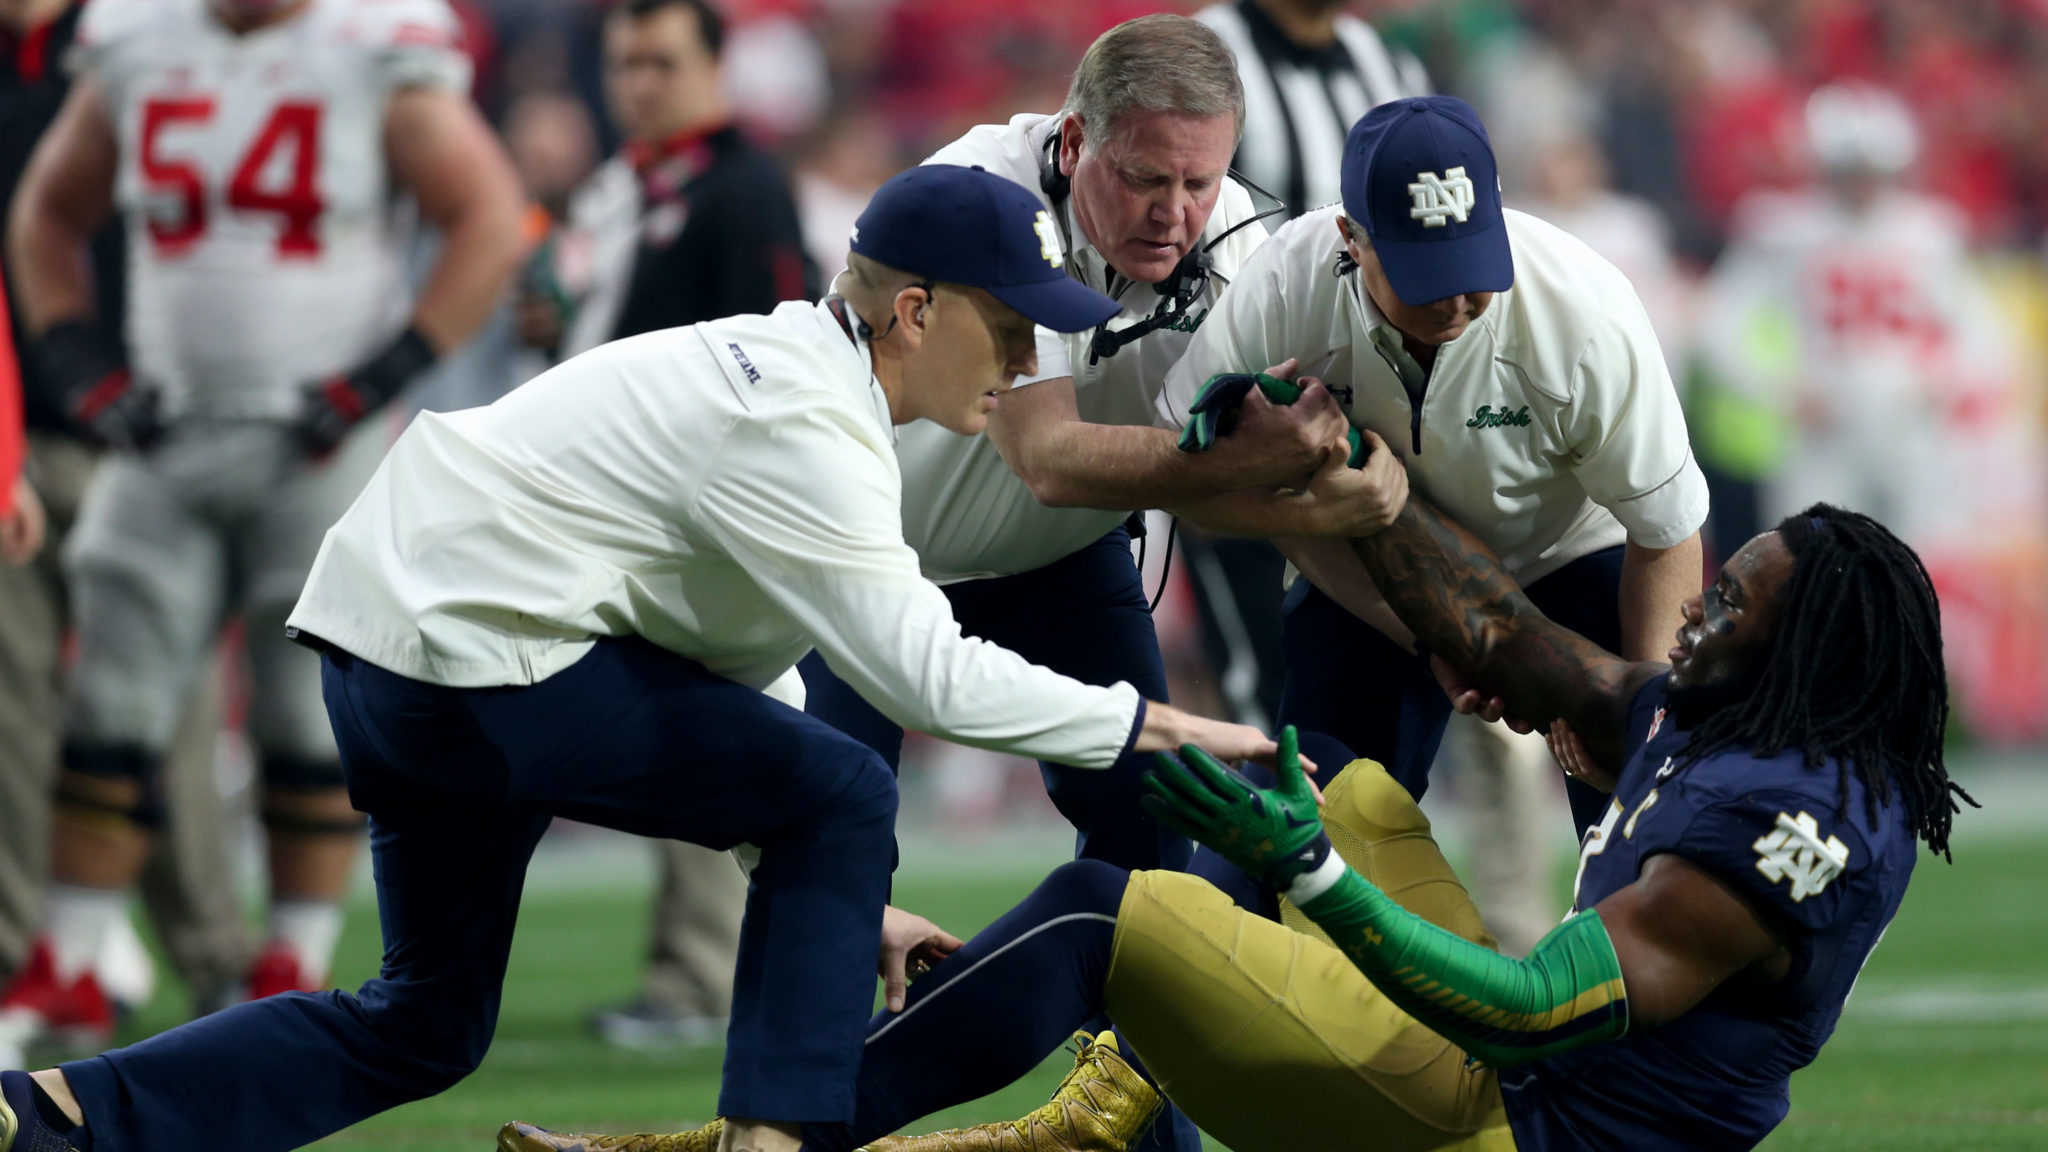 notre-dame-jaylon-smith-knee-surgery-nfl-draft-2016